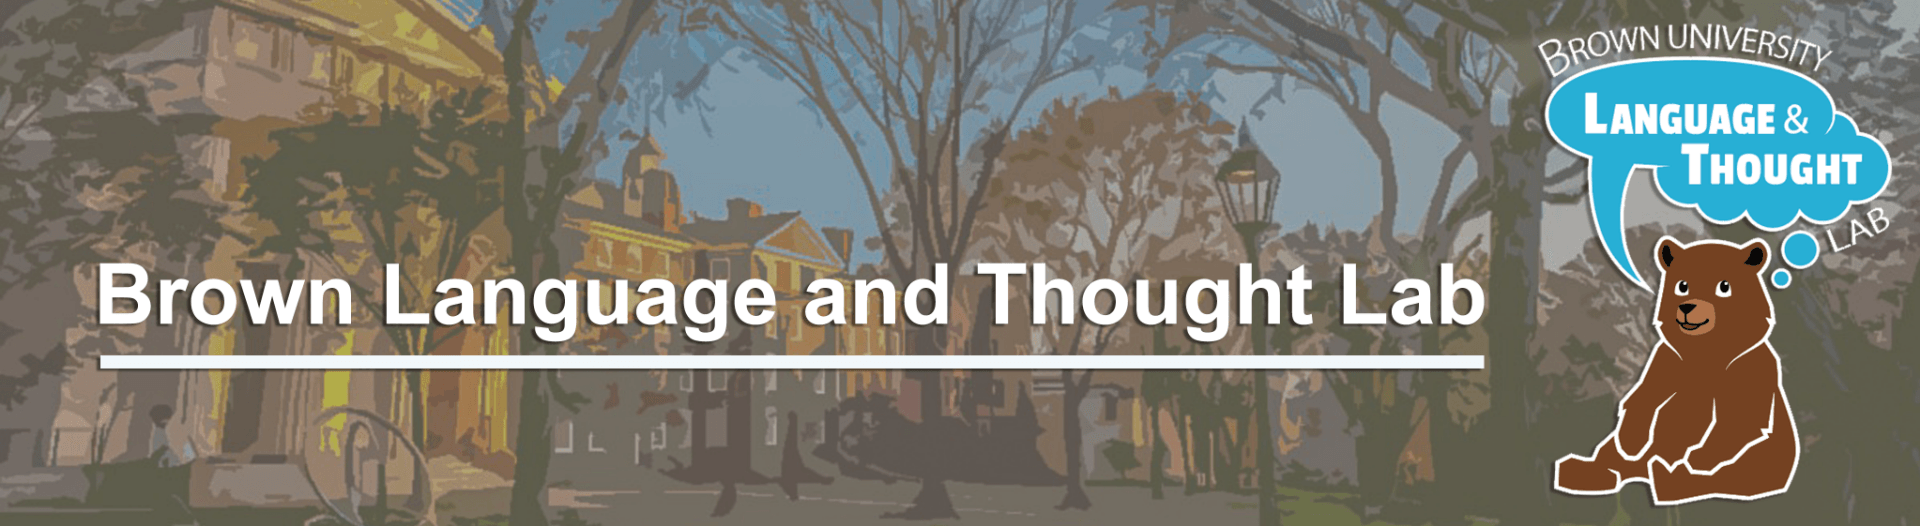 Brown Language and Thought Lab